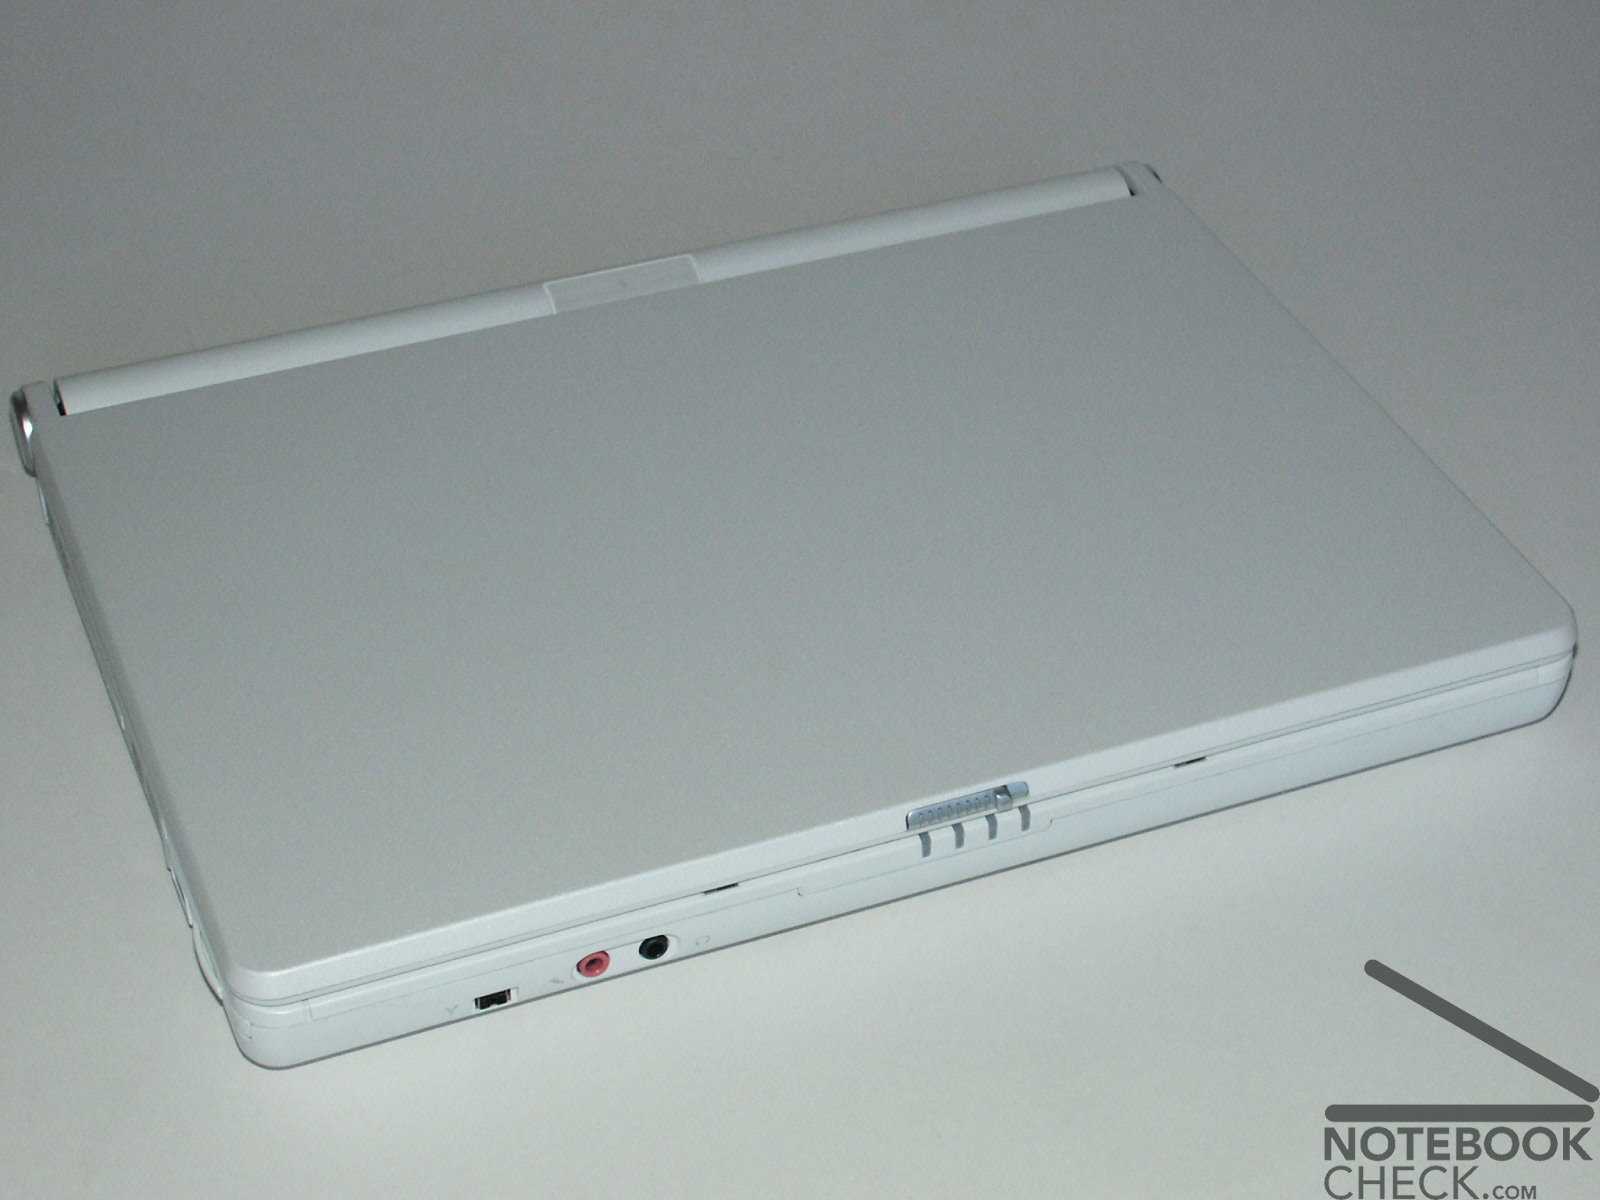 MSI S260 DRIVERS FOR WINDOWS 7